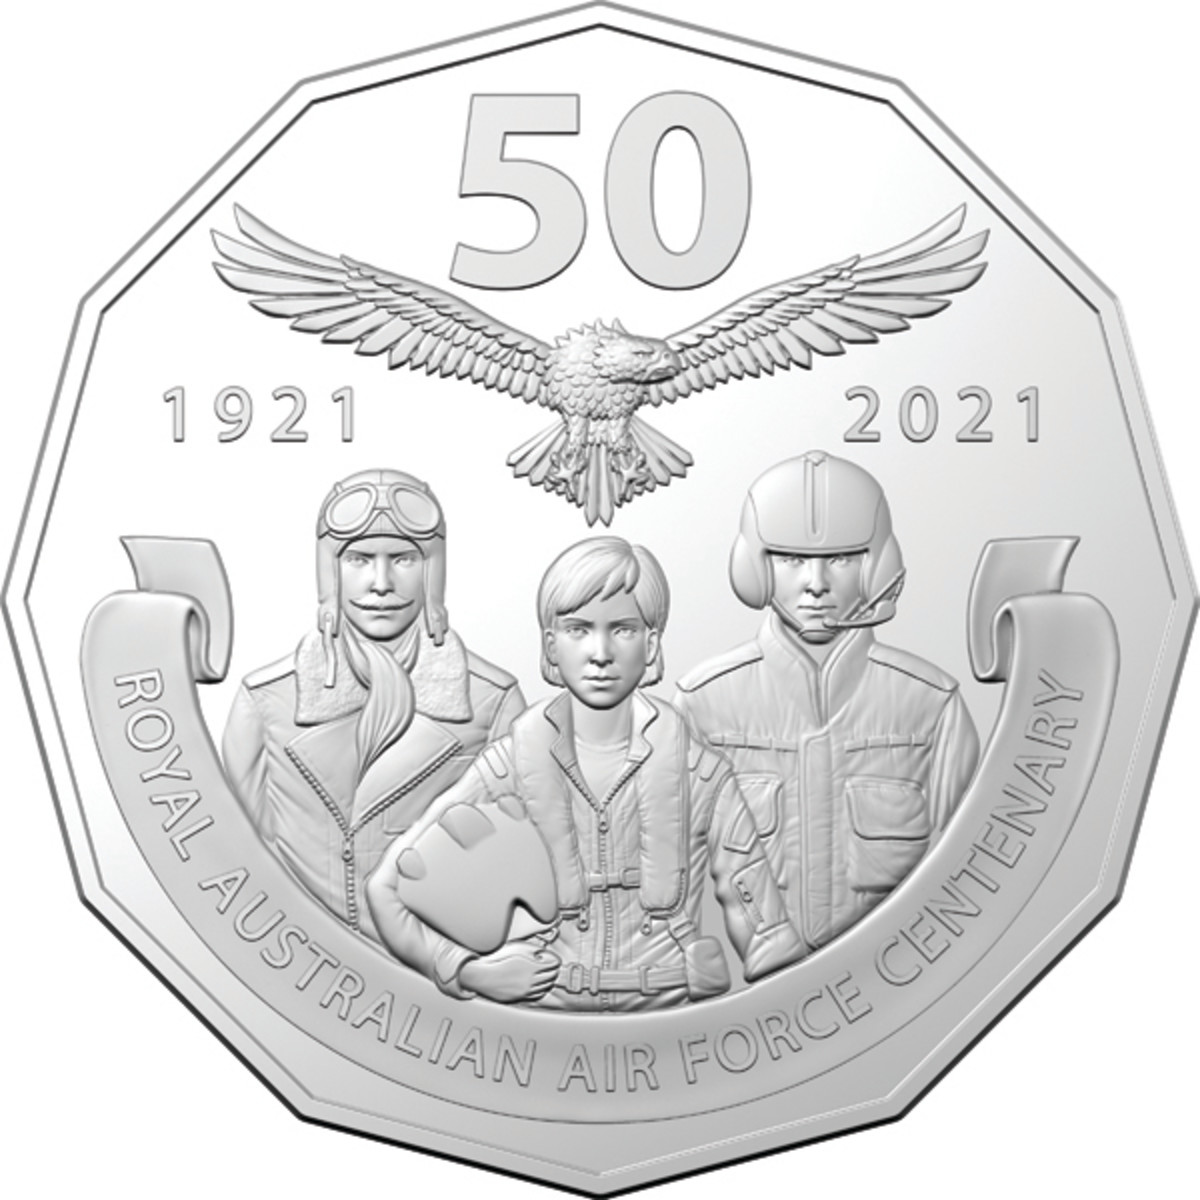 The Centenary 1921-2021 coin in this set offers a classic design made to honor those who have served in the RAAF.